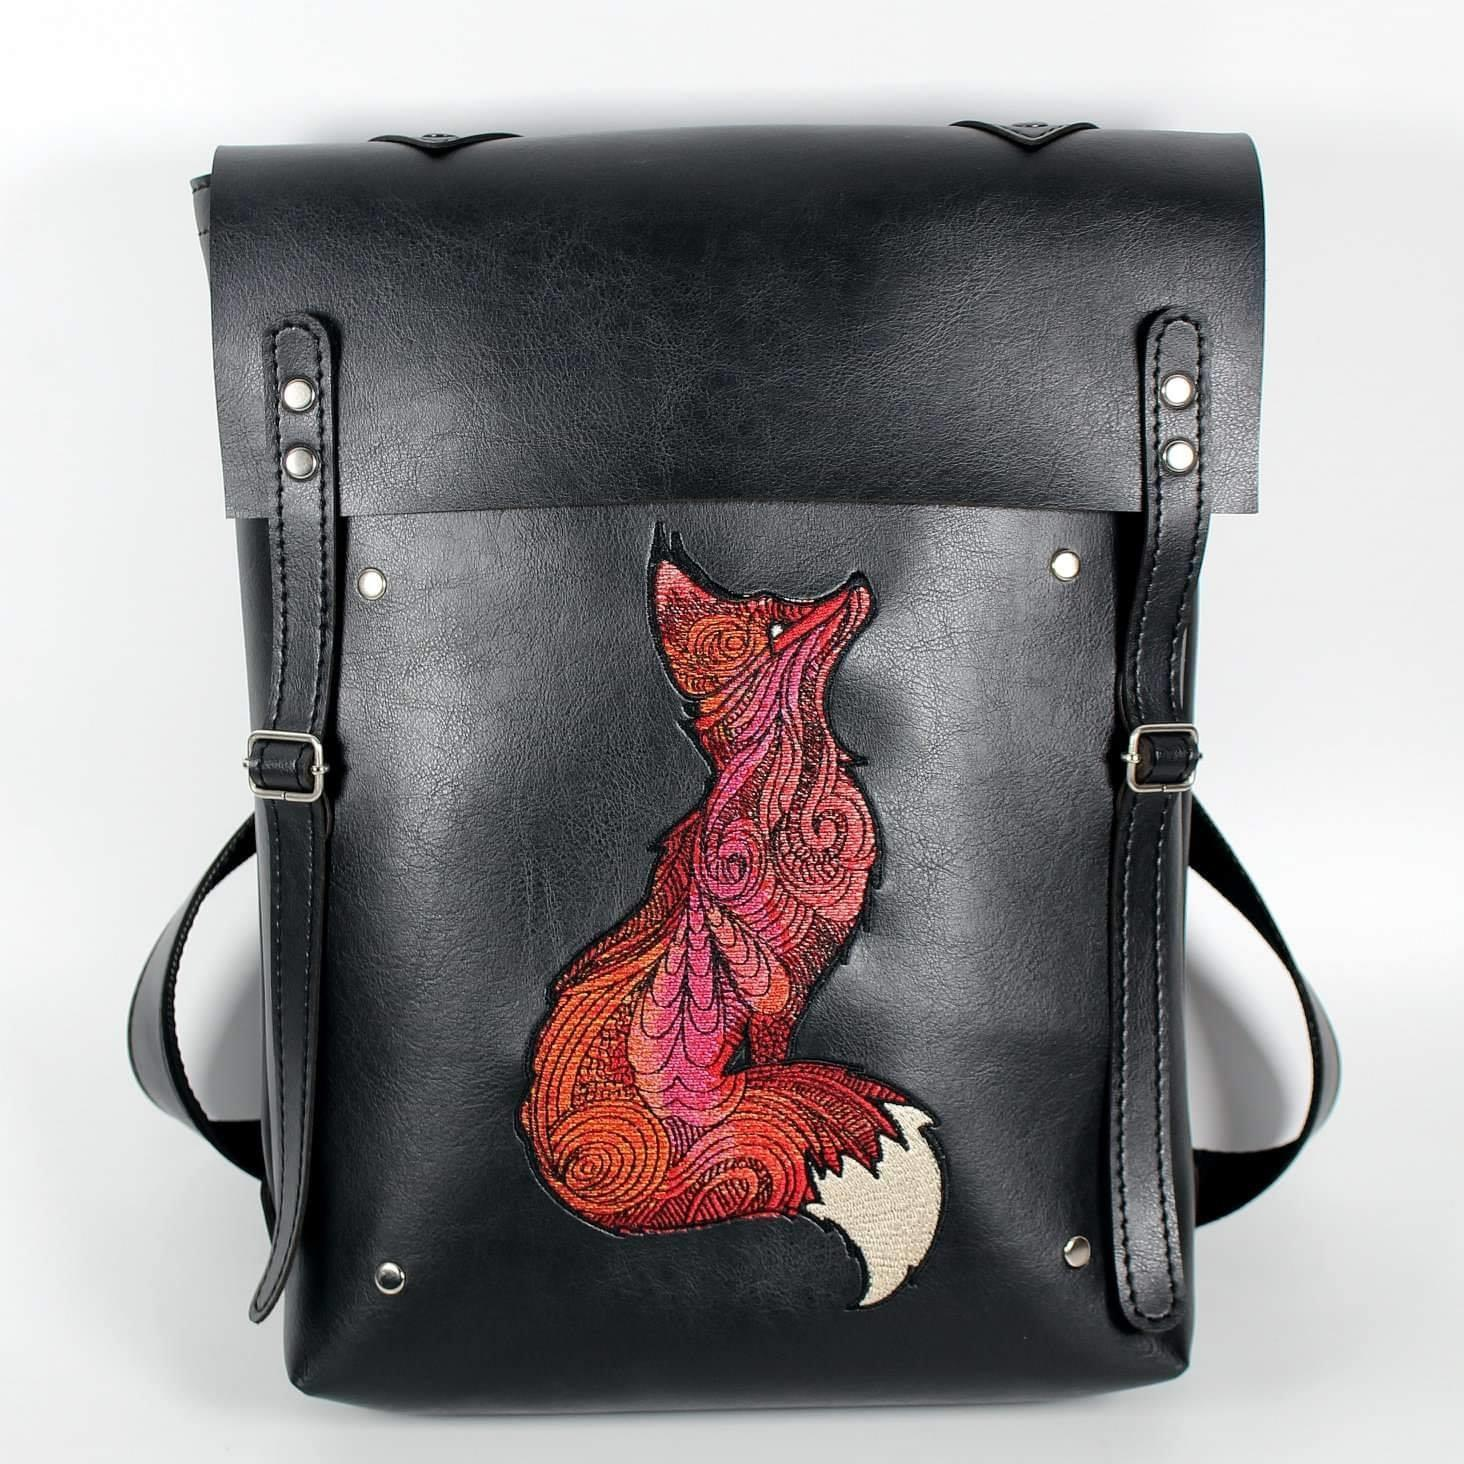 Embroidered bag with Mosaic fox design